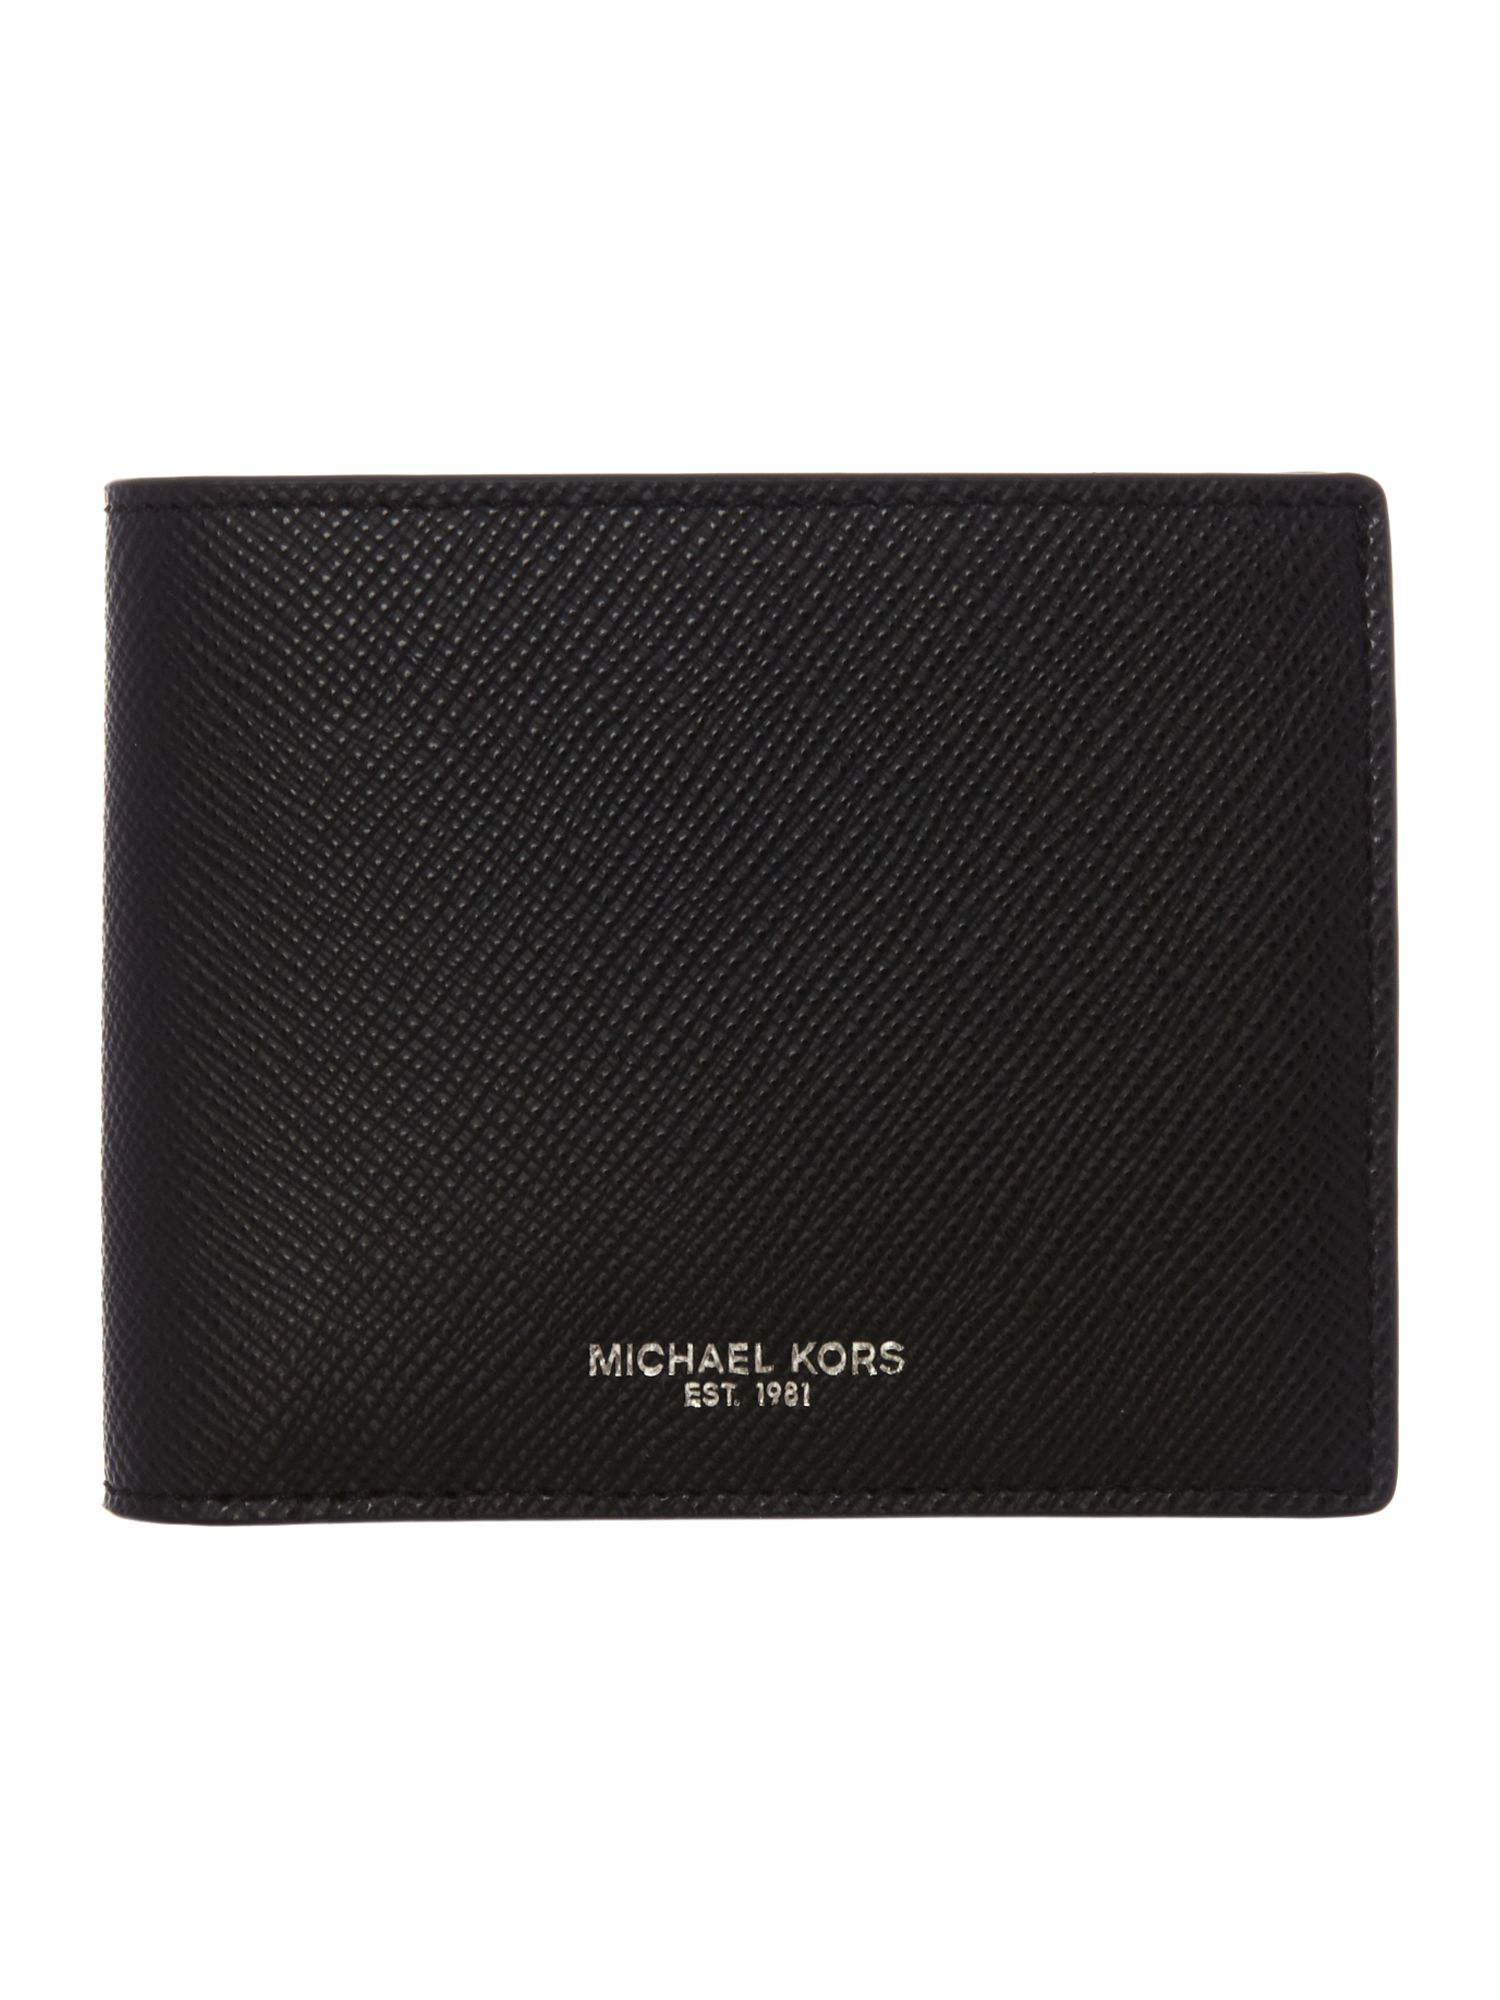 Michael Kors Billfold Crossgrain Leather Wallet £72